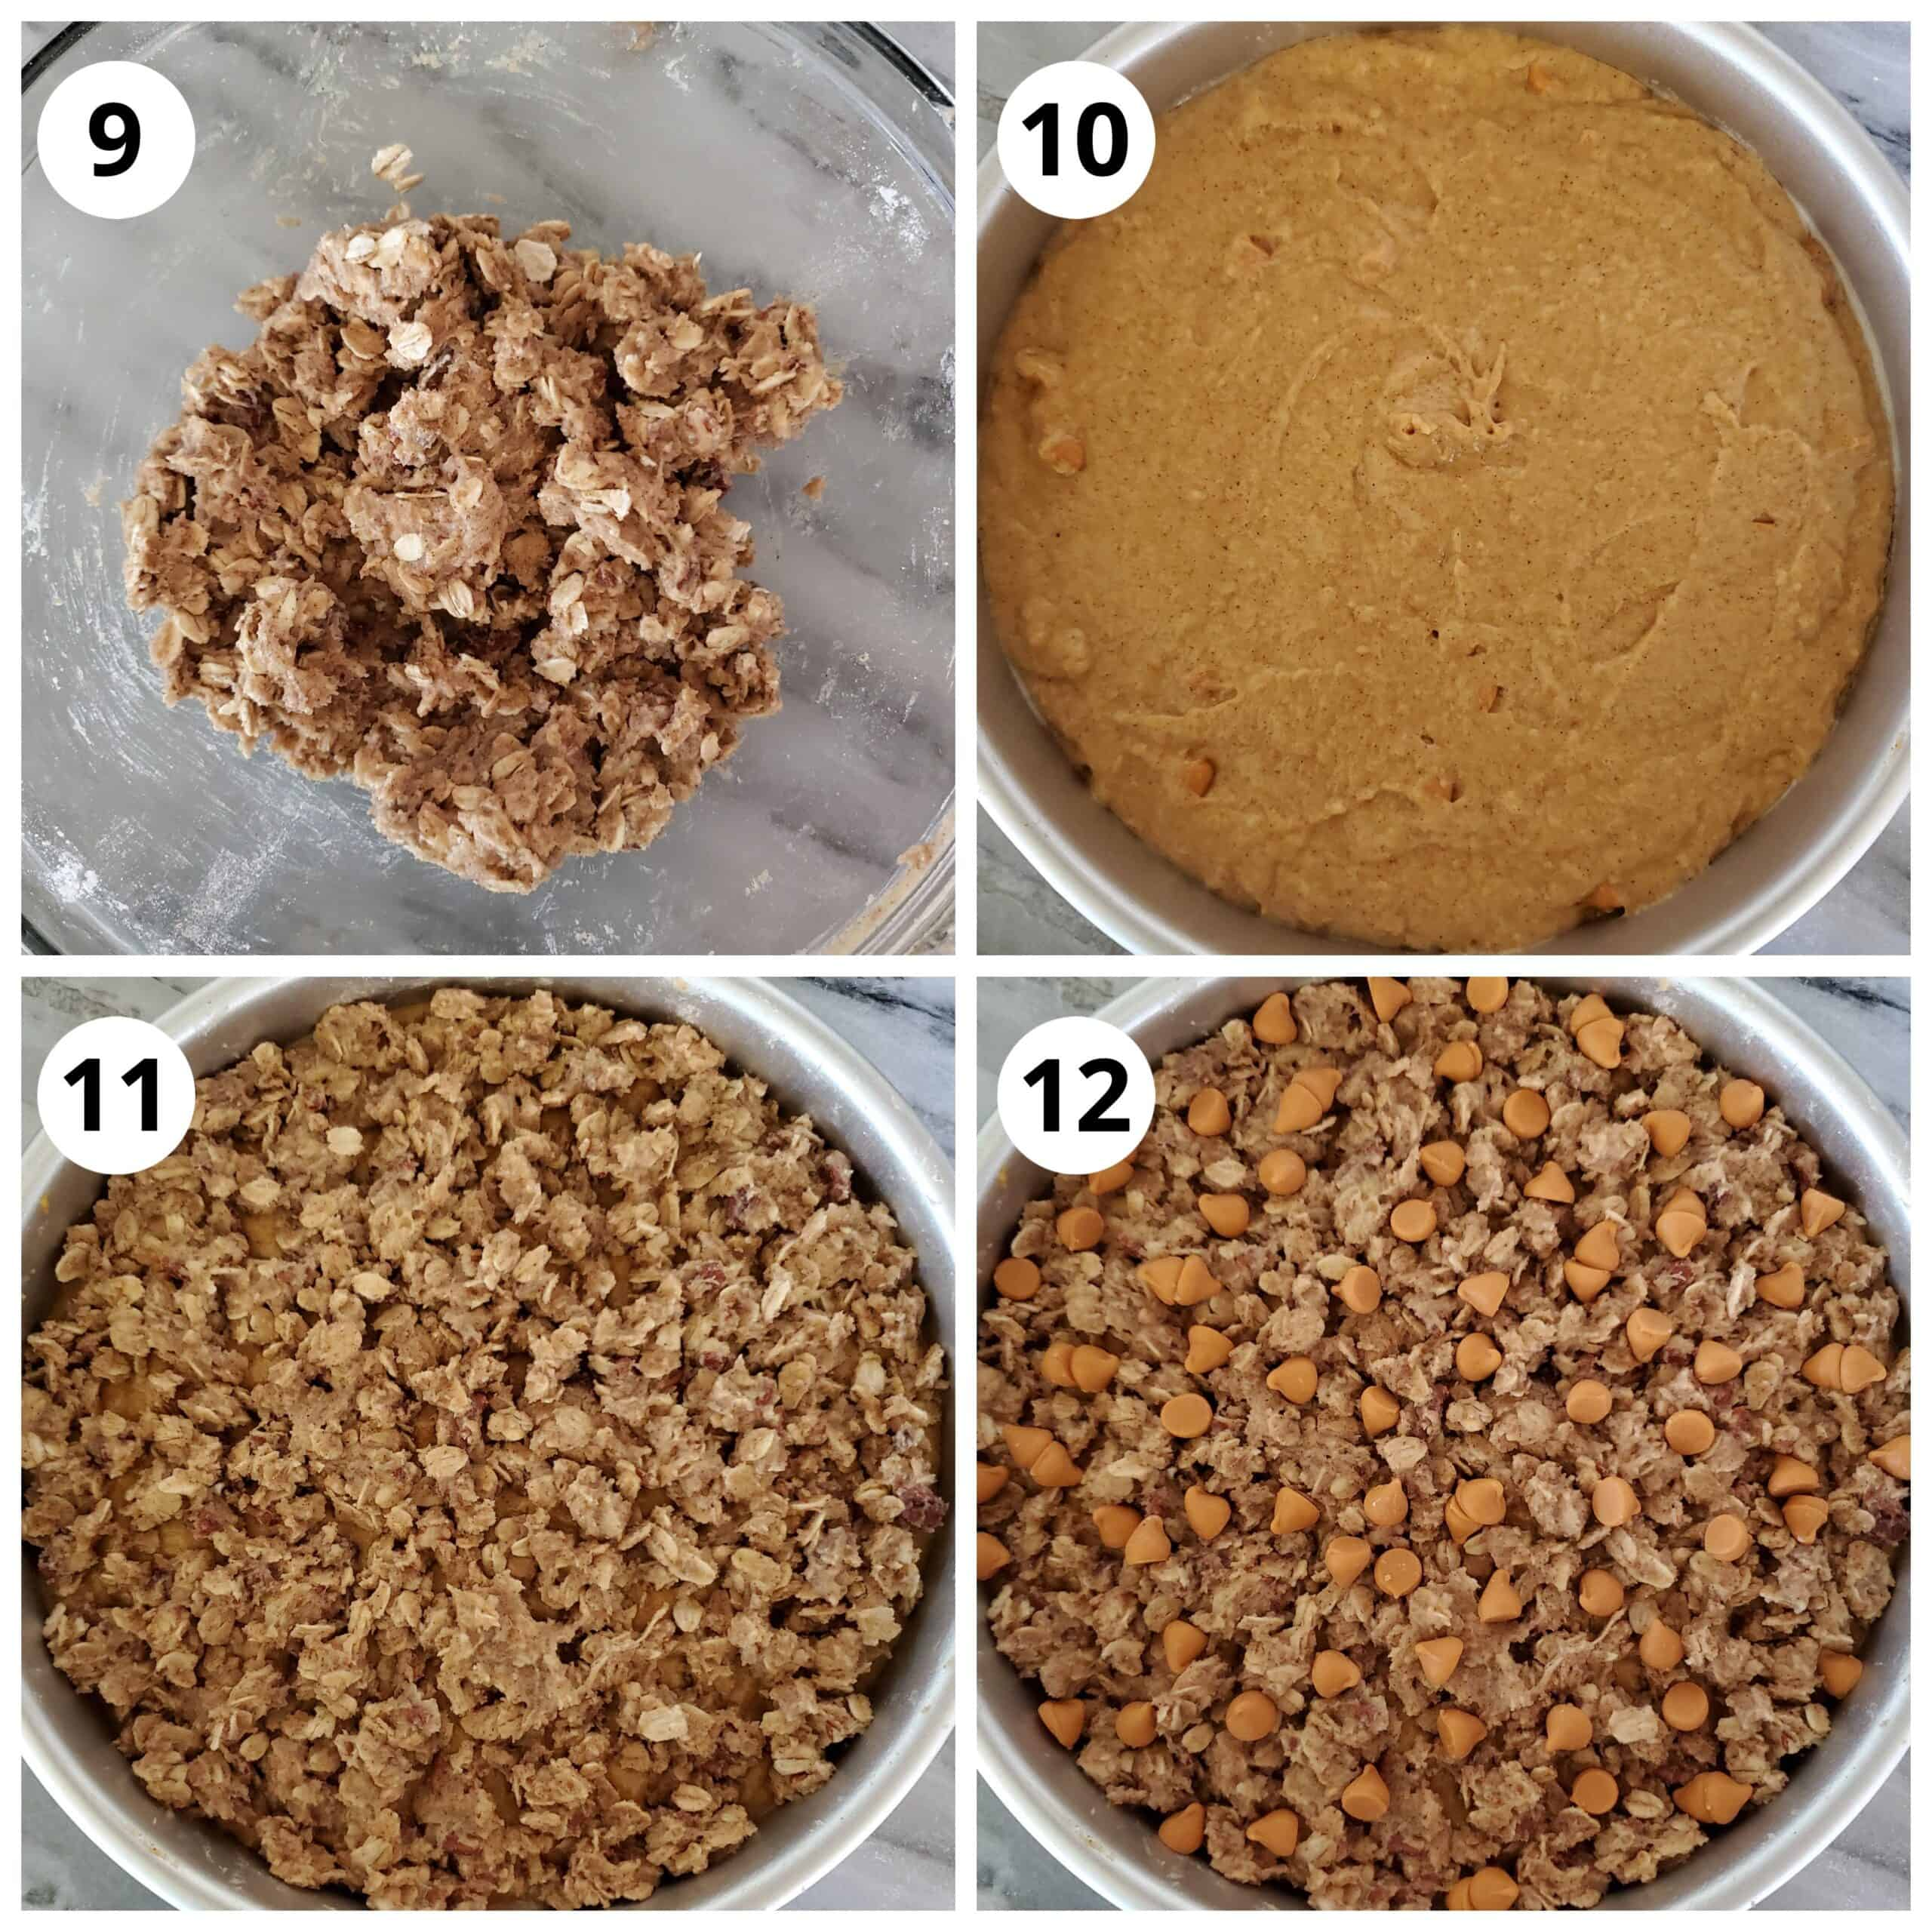 Steps for adding the cake batter to pan and topping with streusel